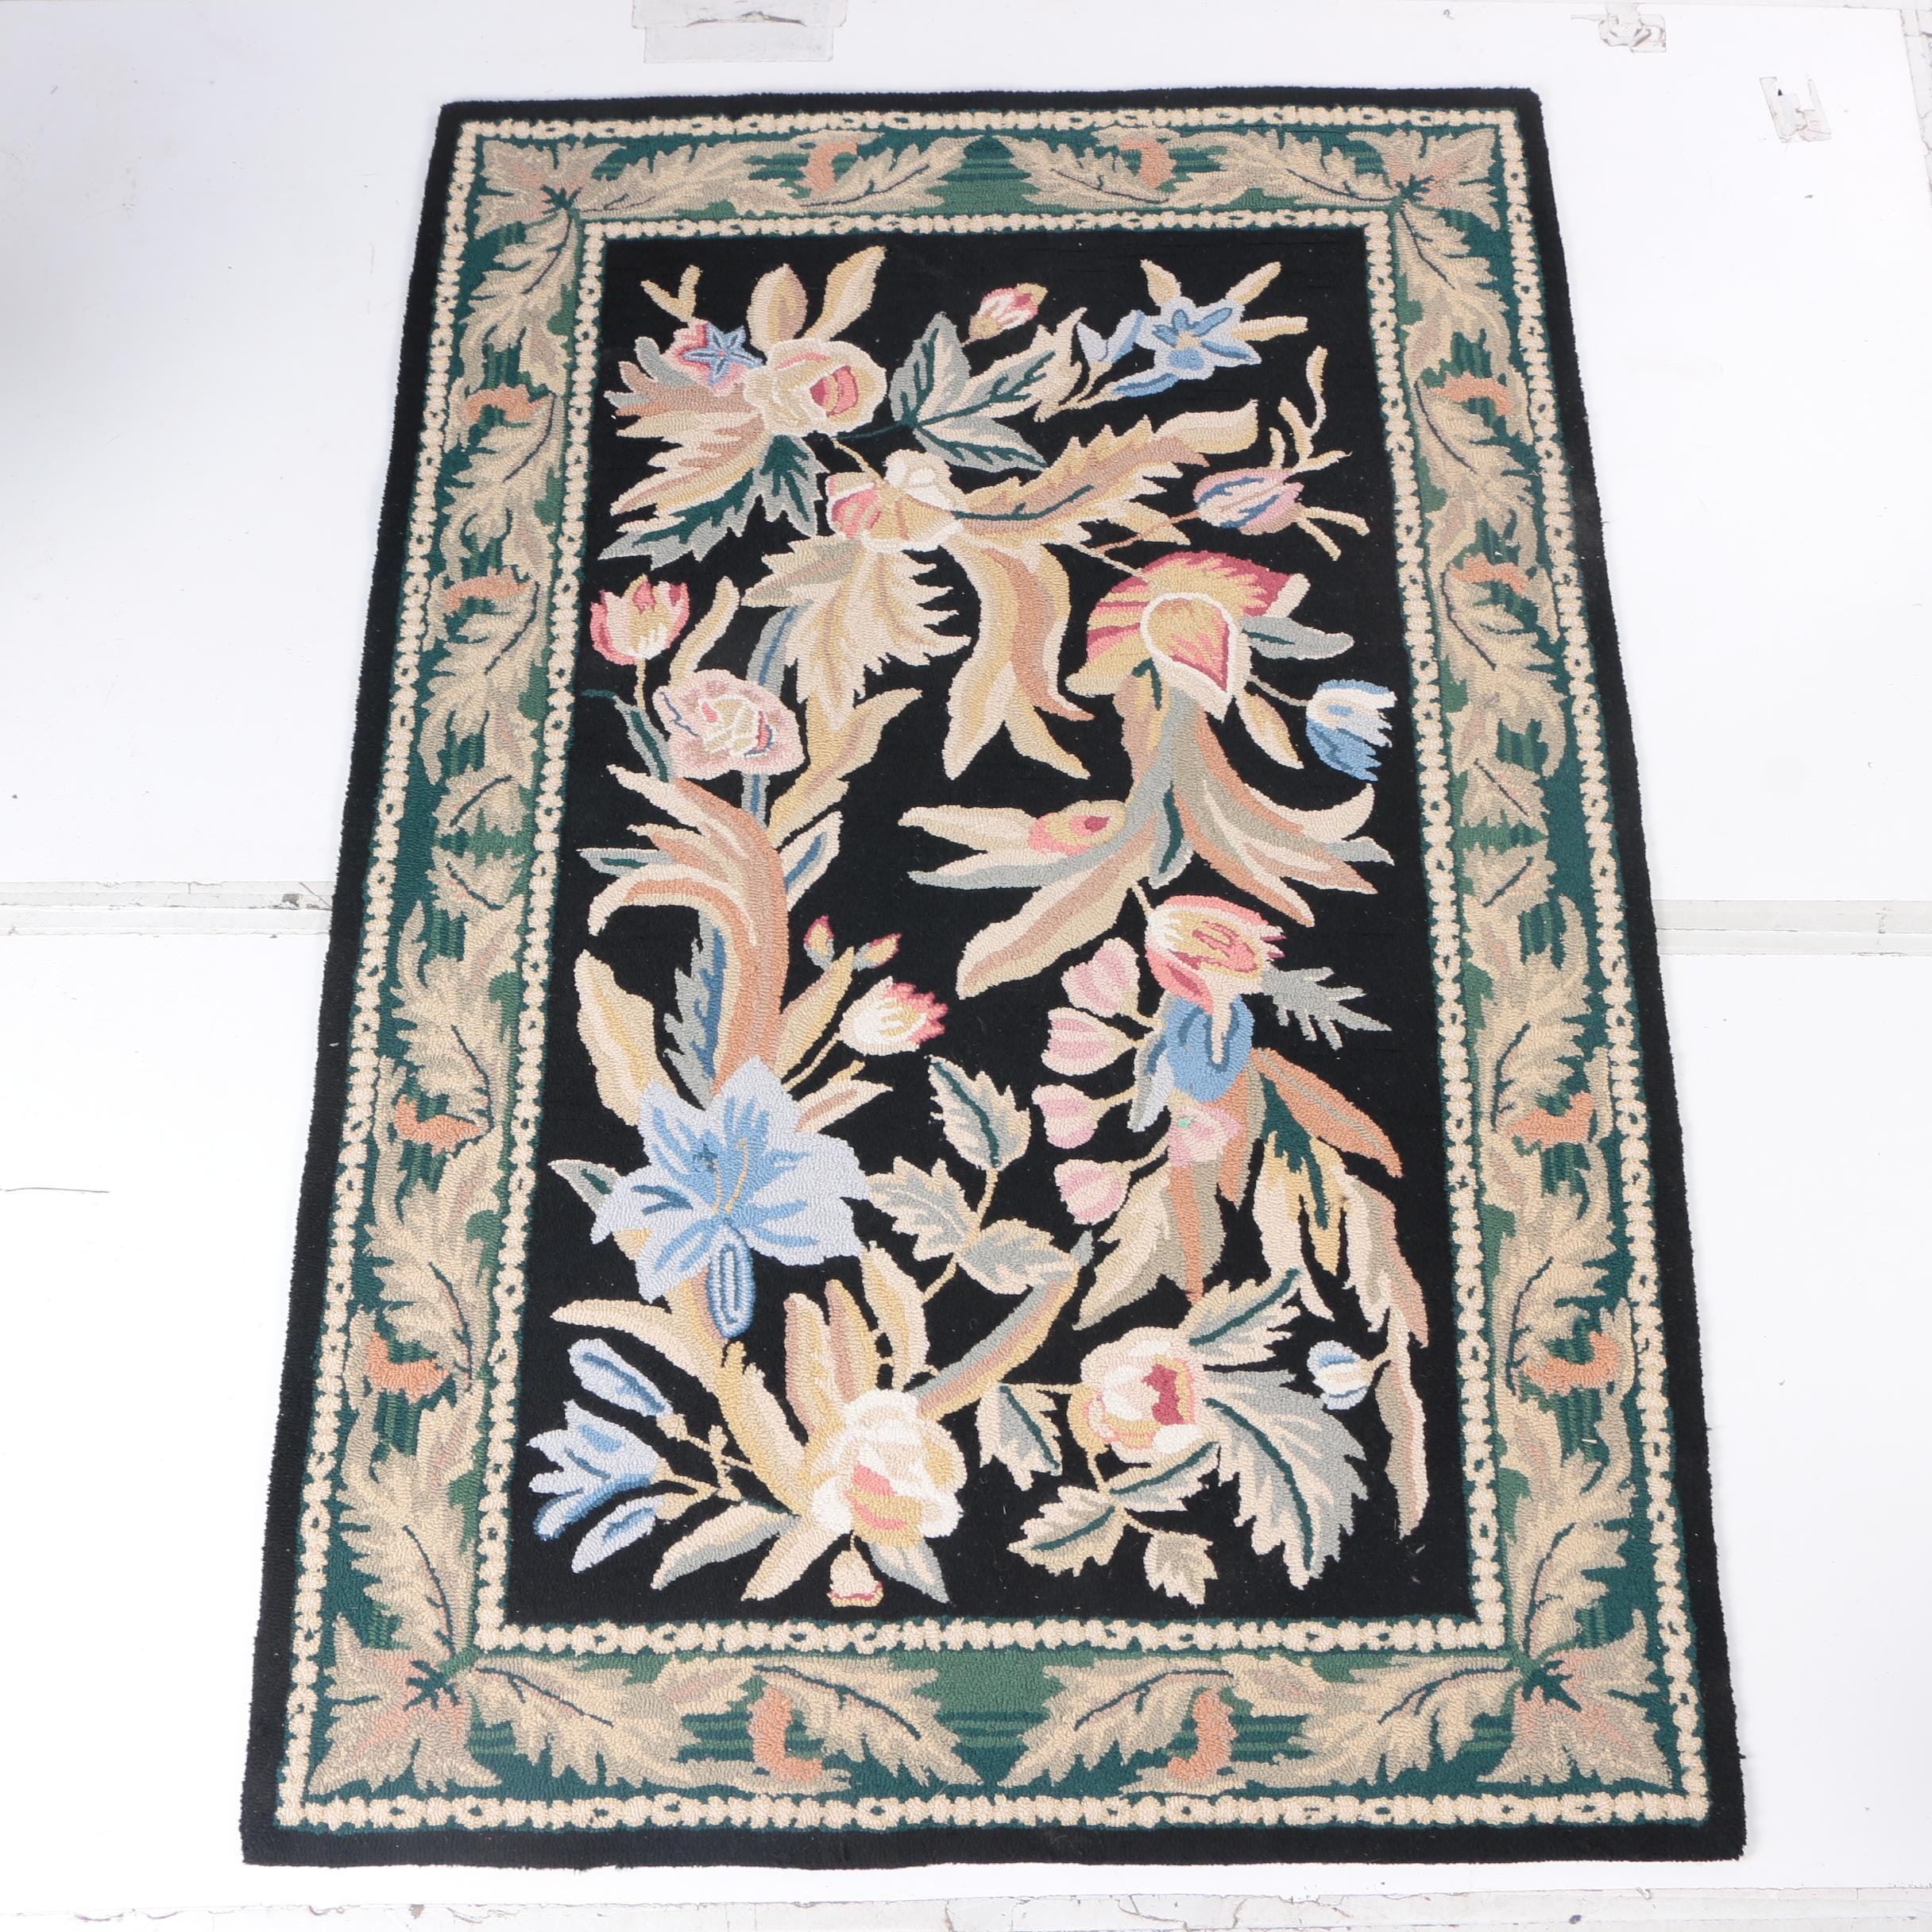 Hand-Hooked Indian Wool Area Rug